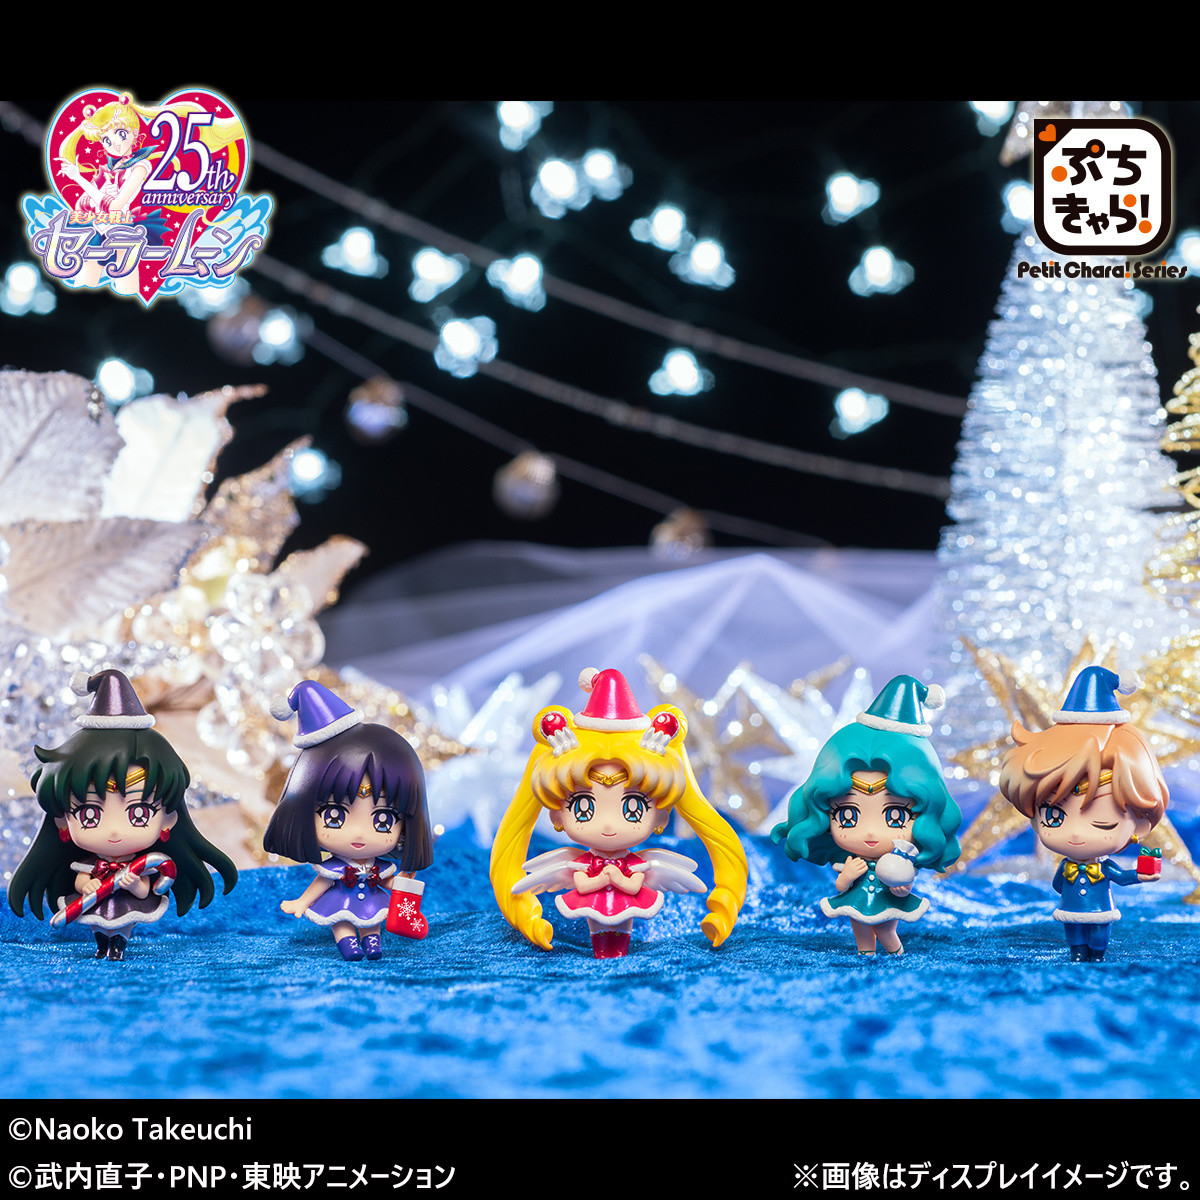 sailor moon outer senshi celebrate christmas with new petit chara release